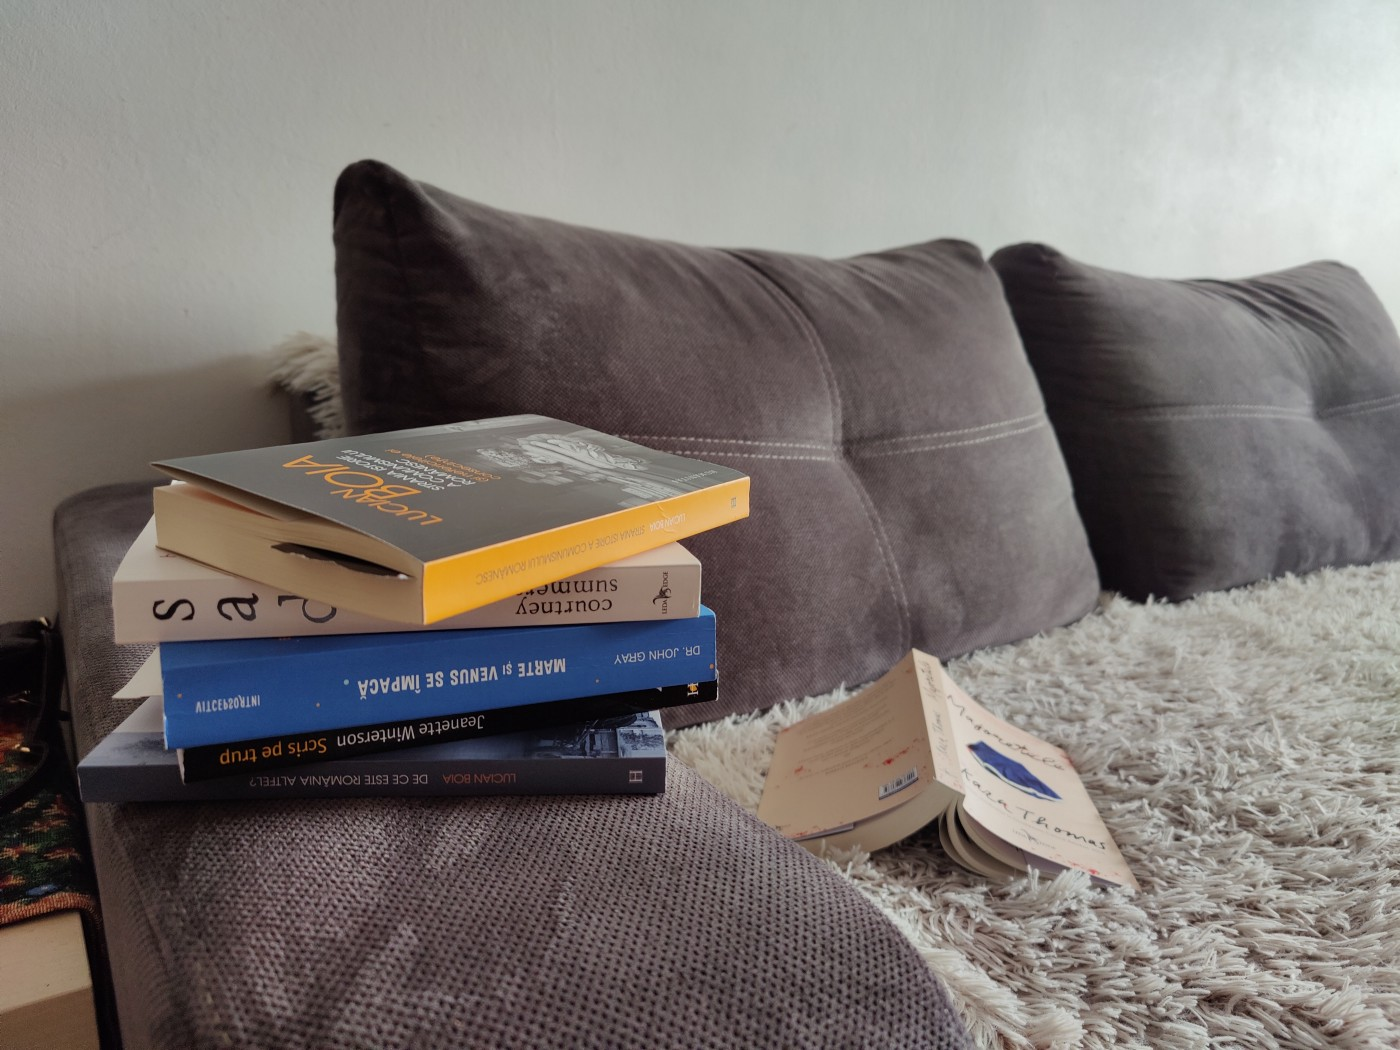 Pile of books on a sofa, with an open, upside-down book nearby